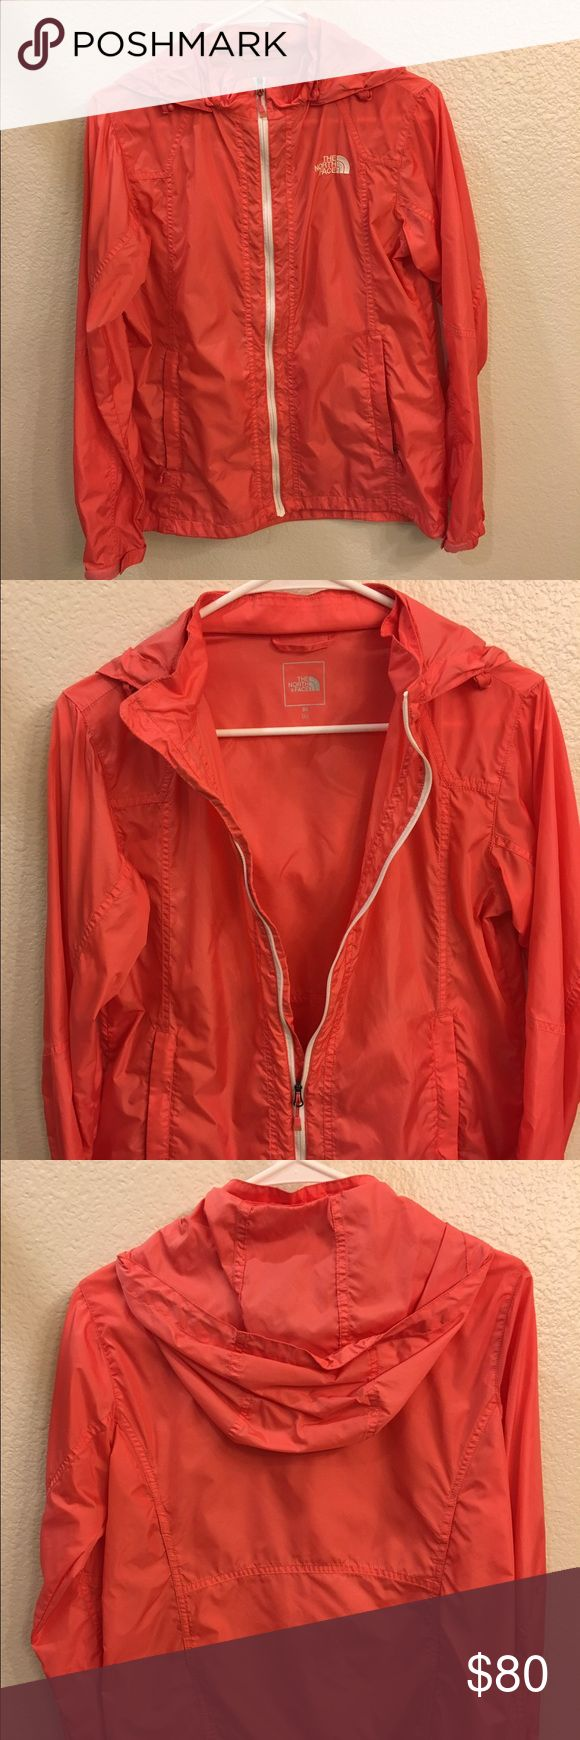 North Face women's pink/coral jacket. Brand new North Face jacket from Korea. They don't have this style in the US. Very lightweight and perfect for every day use. The size says LARGE but it's more like a MEDIUM. Picture looks kind of red but it's more of a pinkish coral color. North Face Jackets & Coats